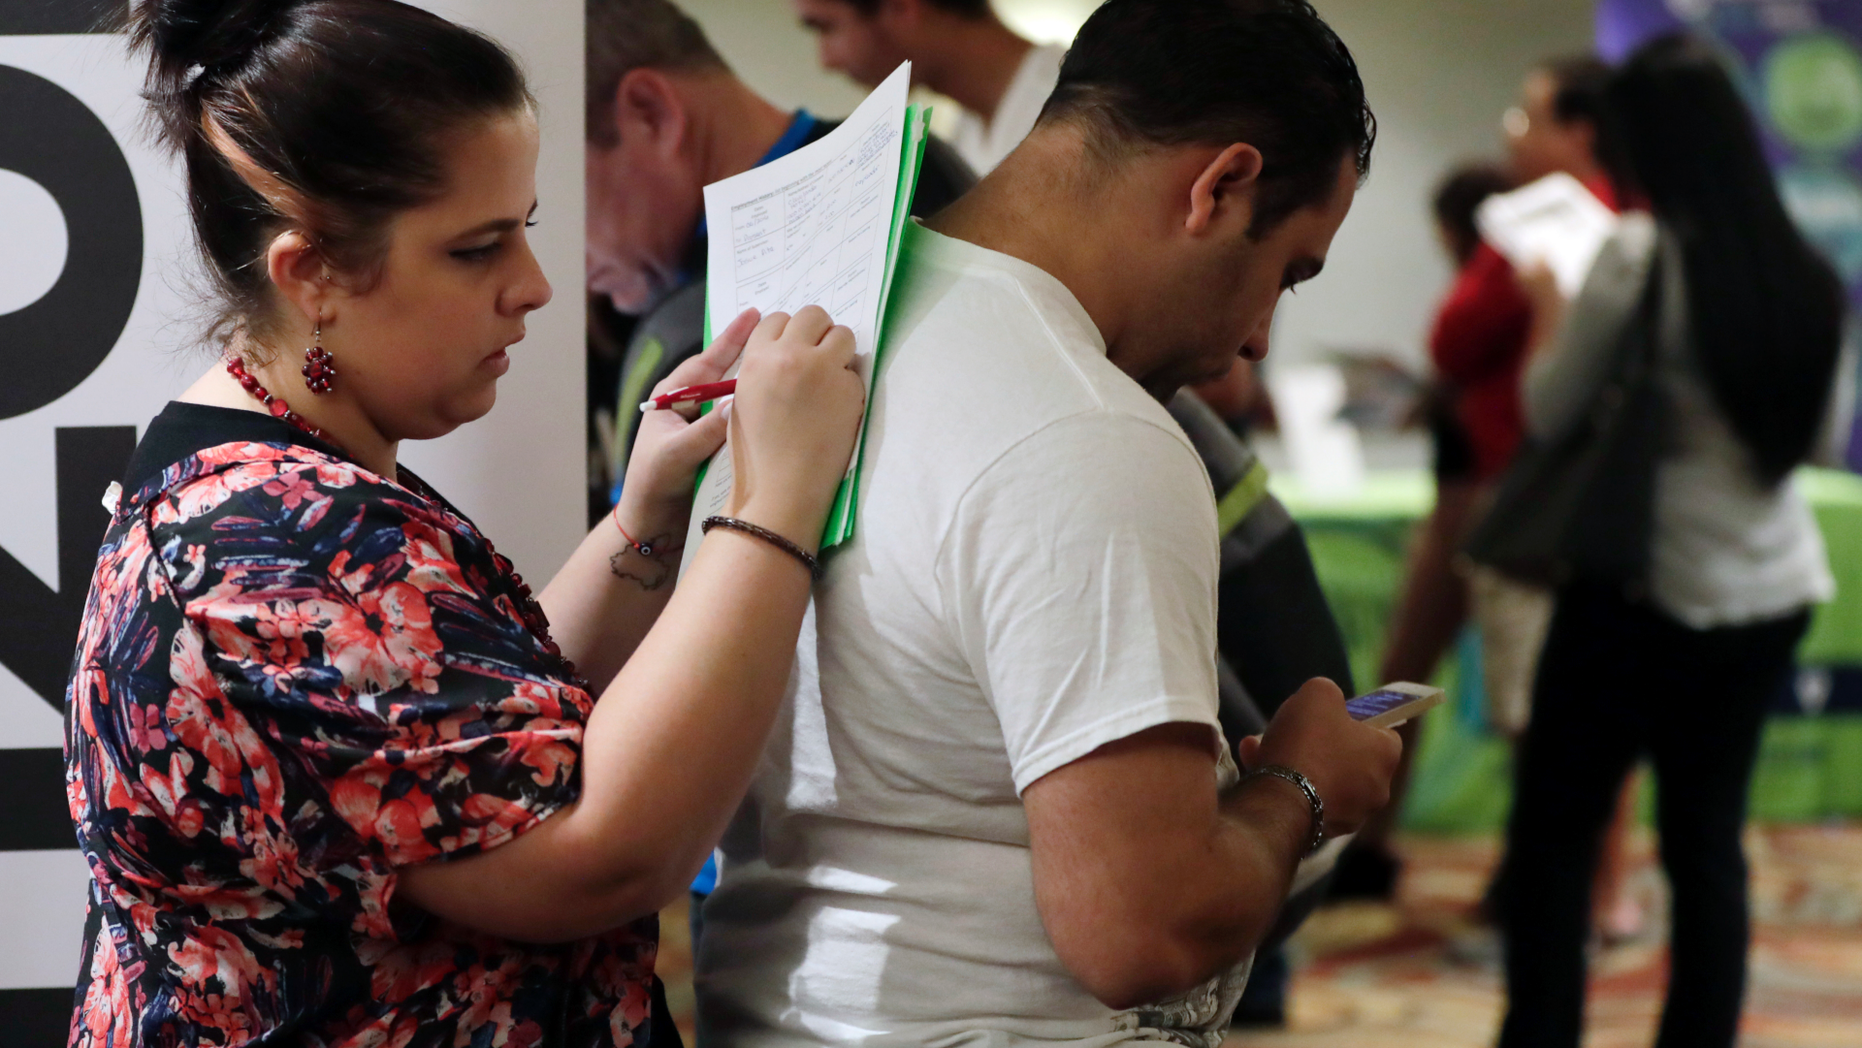 FILE- In this Jan. 30, 2018, file photo, Loredana Gonzalez, of Doral, Fla., fills out a job application at a JobNewsUSA job fair in Miami Lakes, Fla. On Friday, Nov. 2, the U.S. government issues the October jobs report. (AP Photo/Lynne Sladky, File)